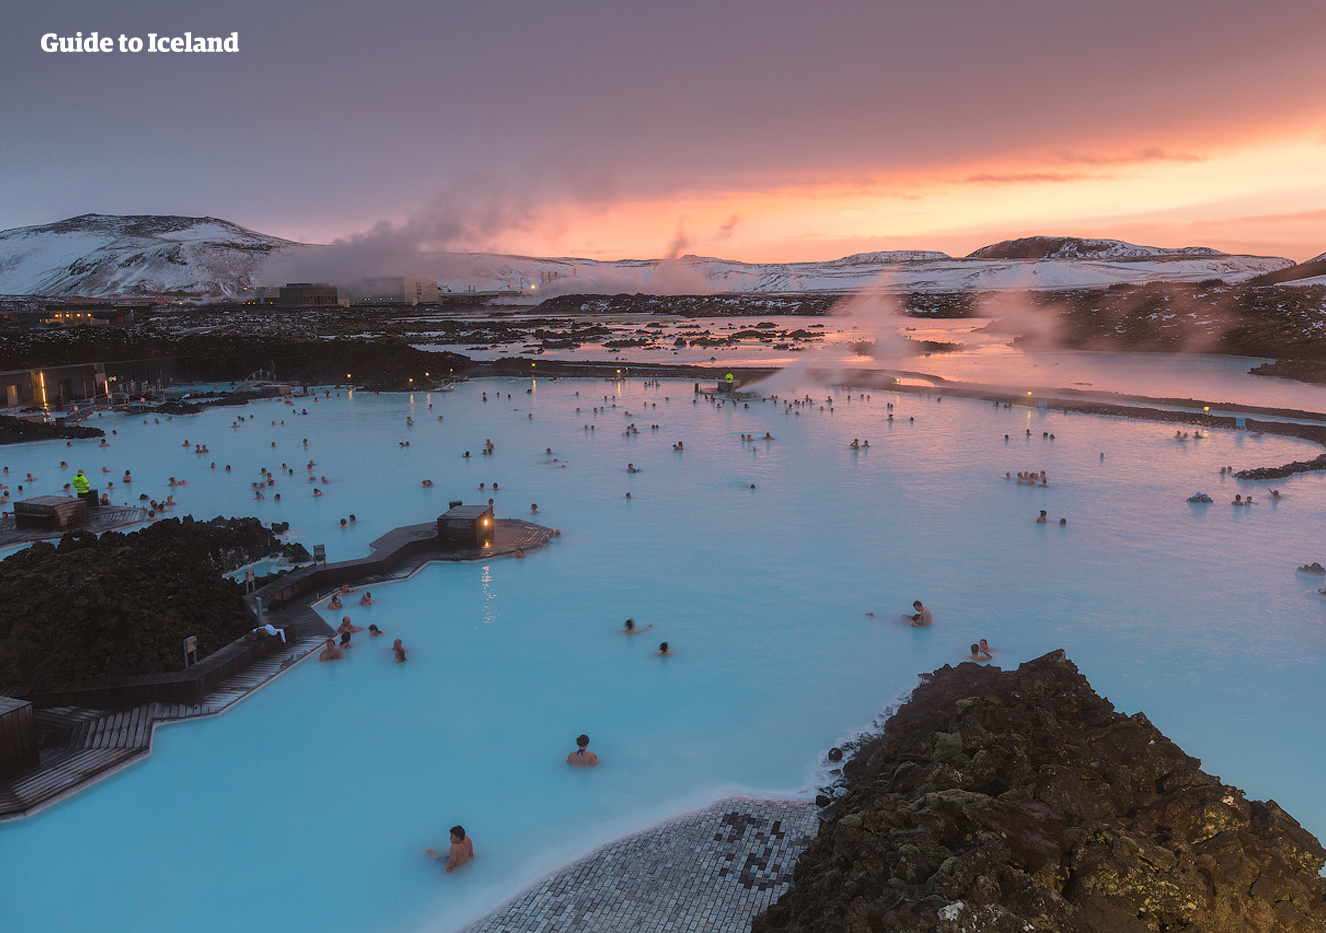 One of Iceland's most popular site, the Blue Lagoon, is located in the rugged lava field of the Reykjanes Peninsula.